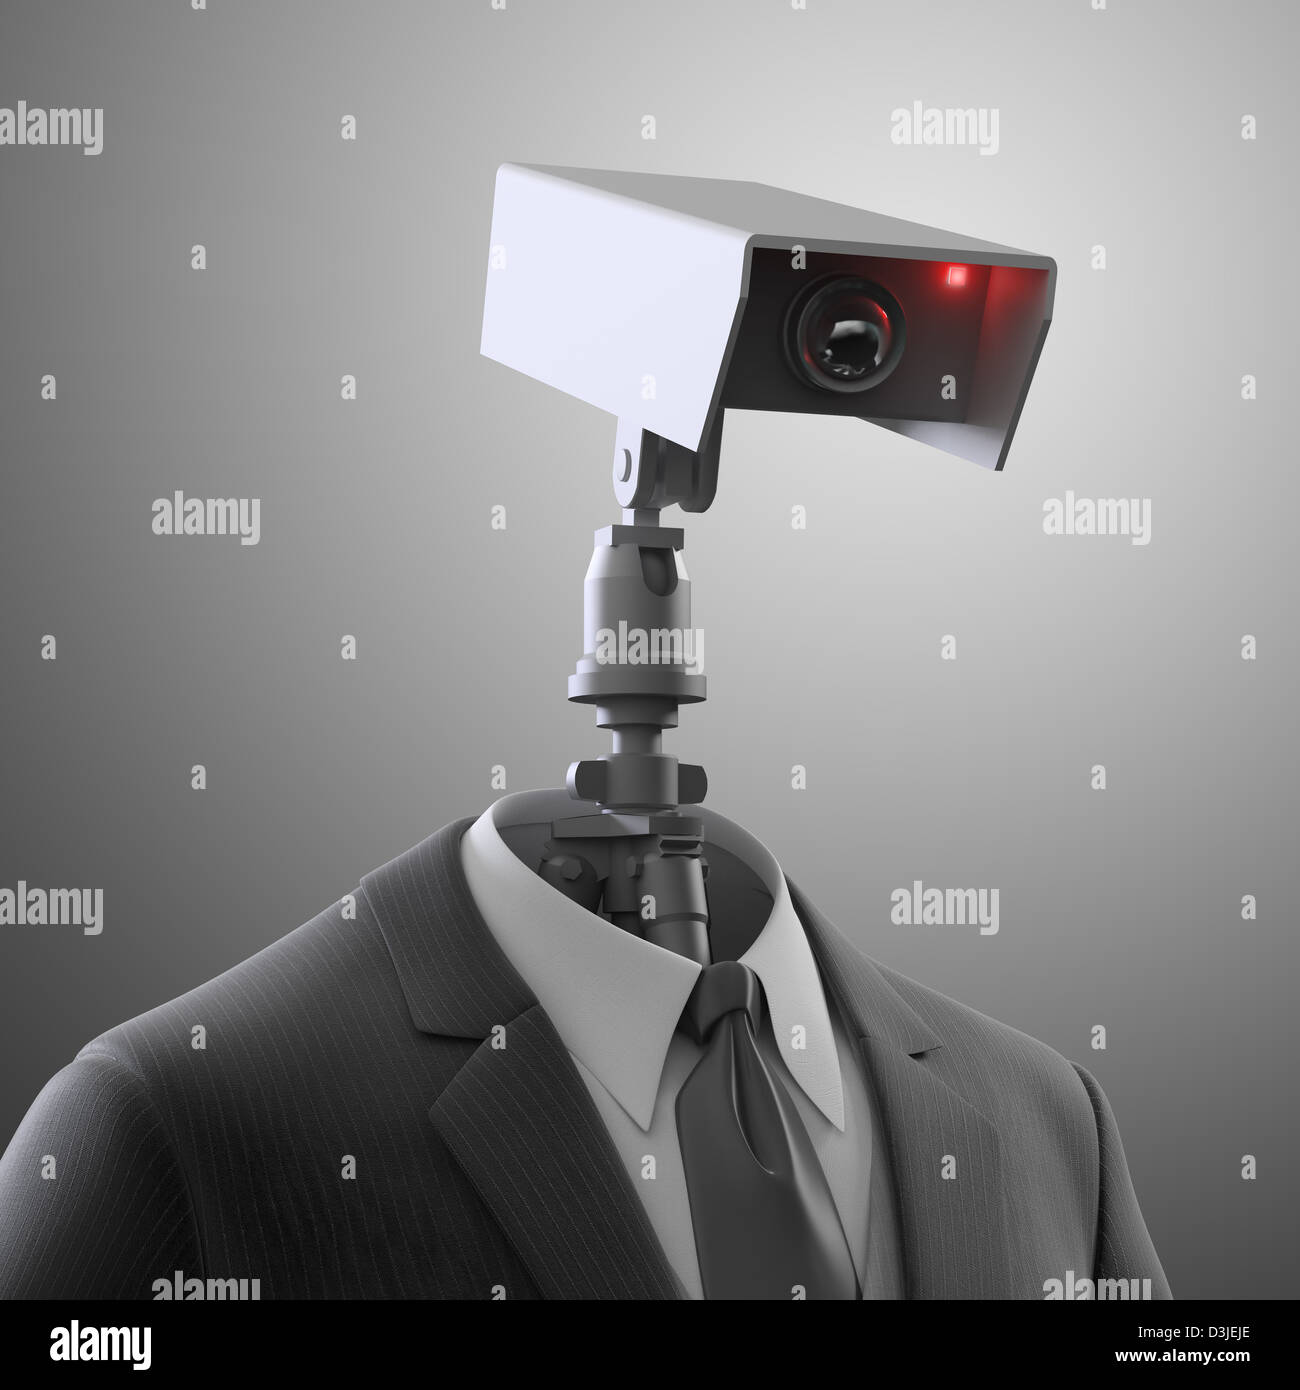 A robotic security camera - automated surveillance Stock Photo